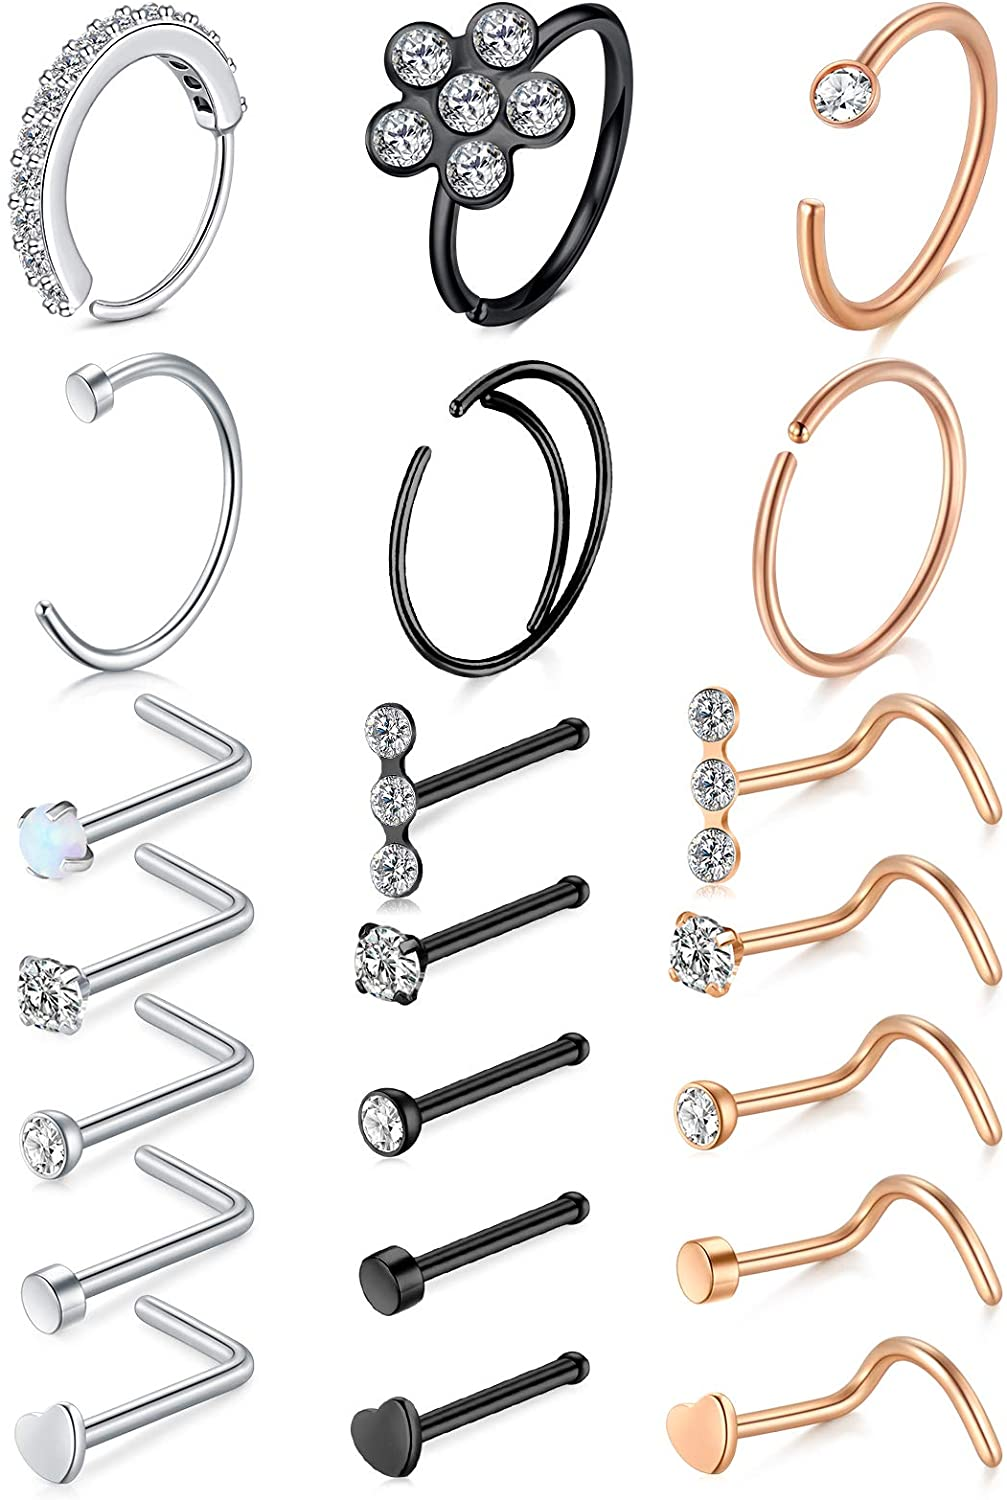 Longita Nose Rings Hoops 18g 20g Septum Ring L Shaped Nose Studs Screw Bone Surgical Stainless Steel C Shape Moon Double Hoop High Nostril Piercing Jewelry Pack Silver Rose Gold Black